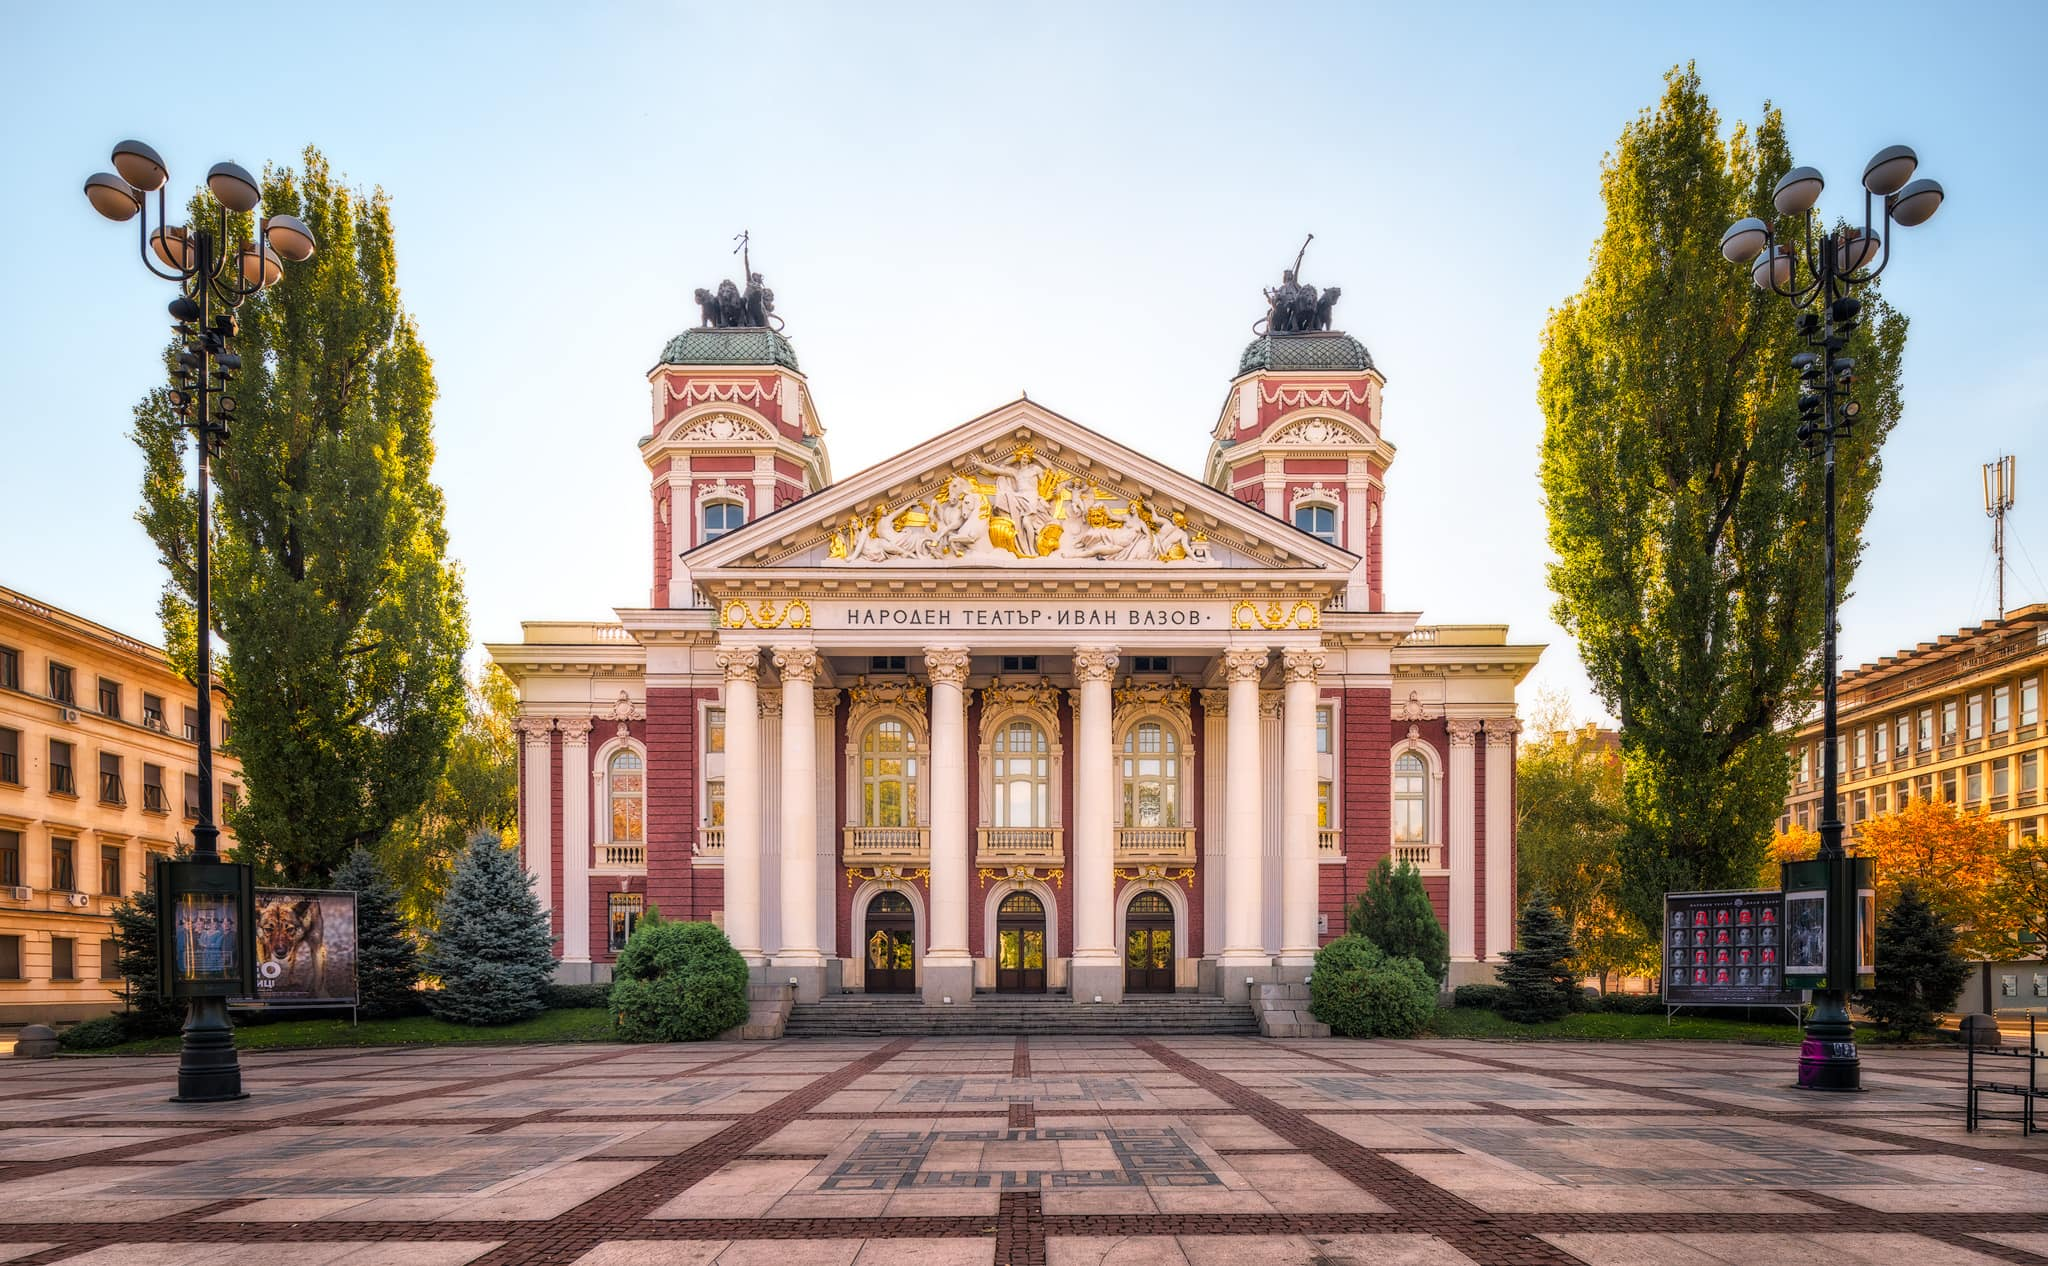 Ivan Vazov Nationaltheater in der Morgensonne in Sofia, Bulgarien.